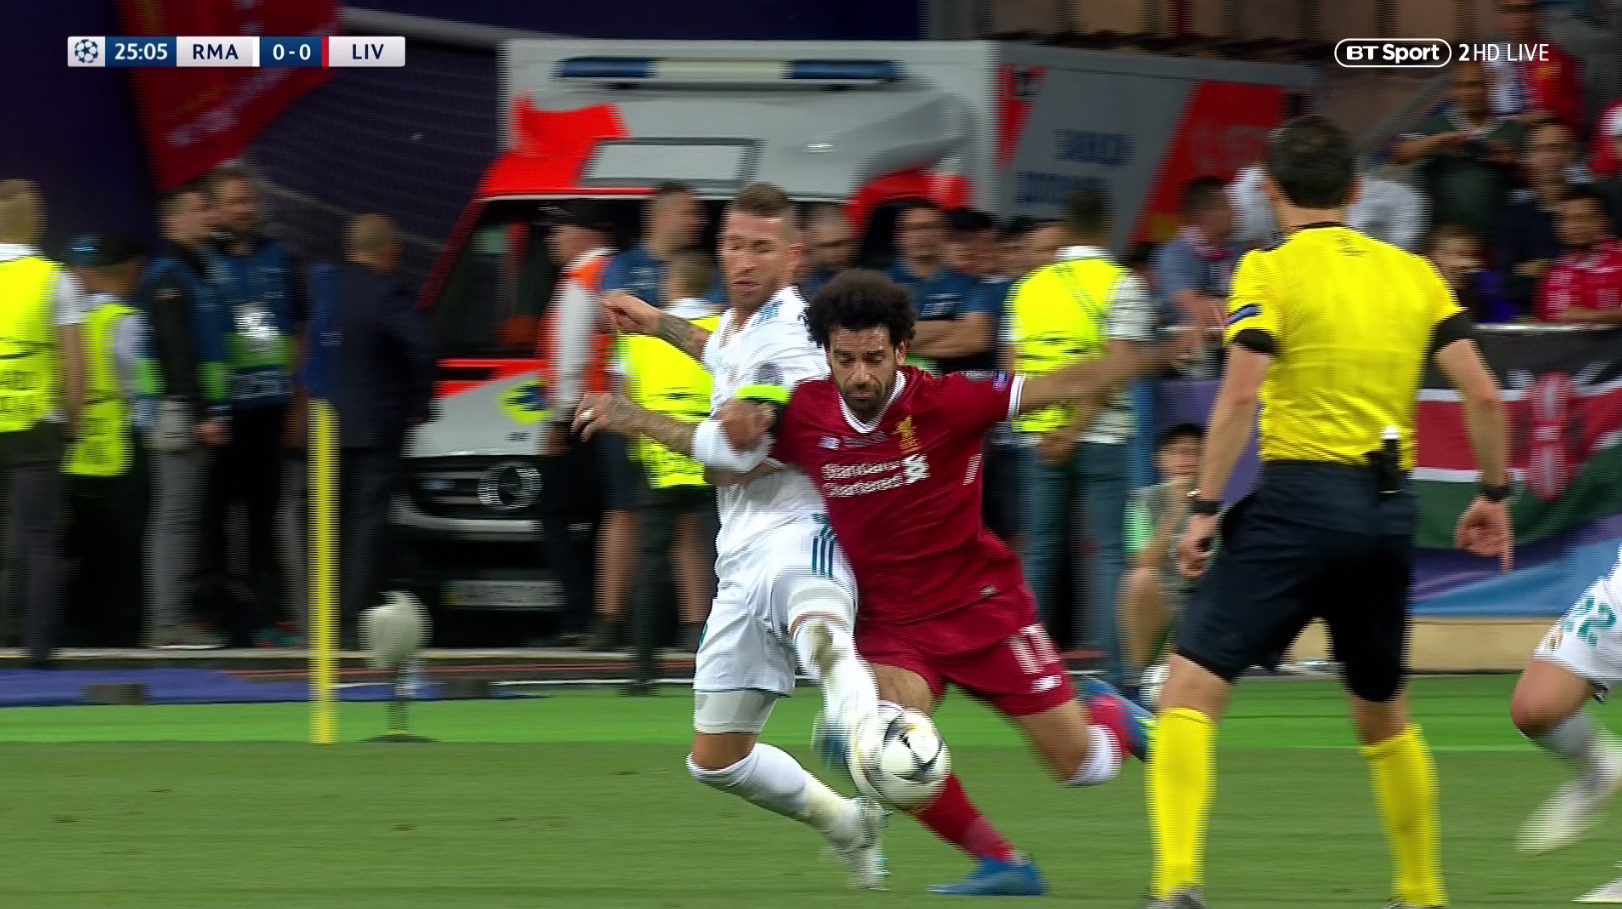 Ramos got hold of Salah's arm and pulled him down